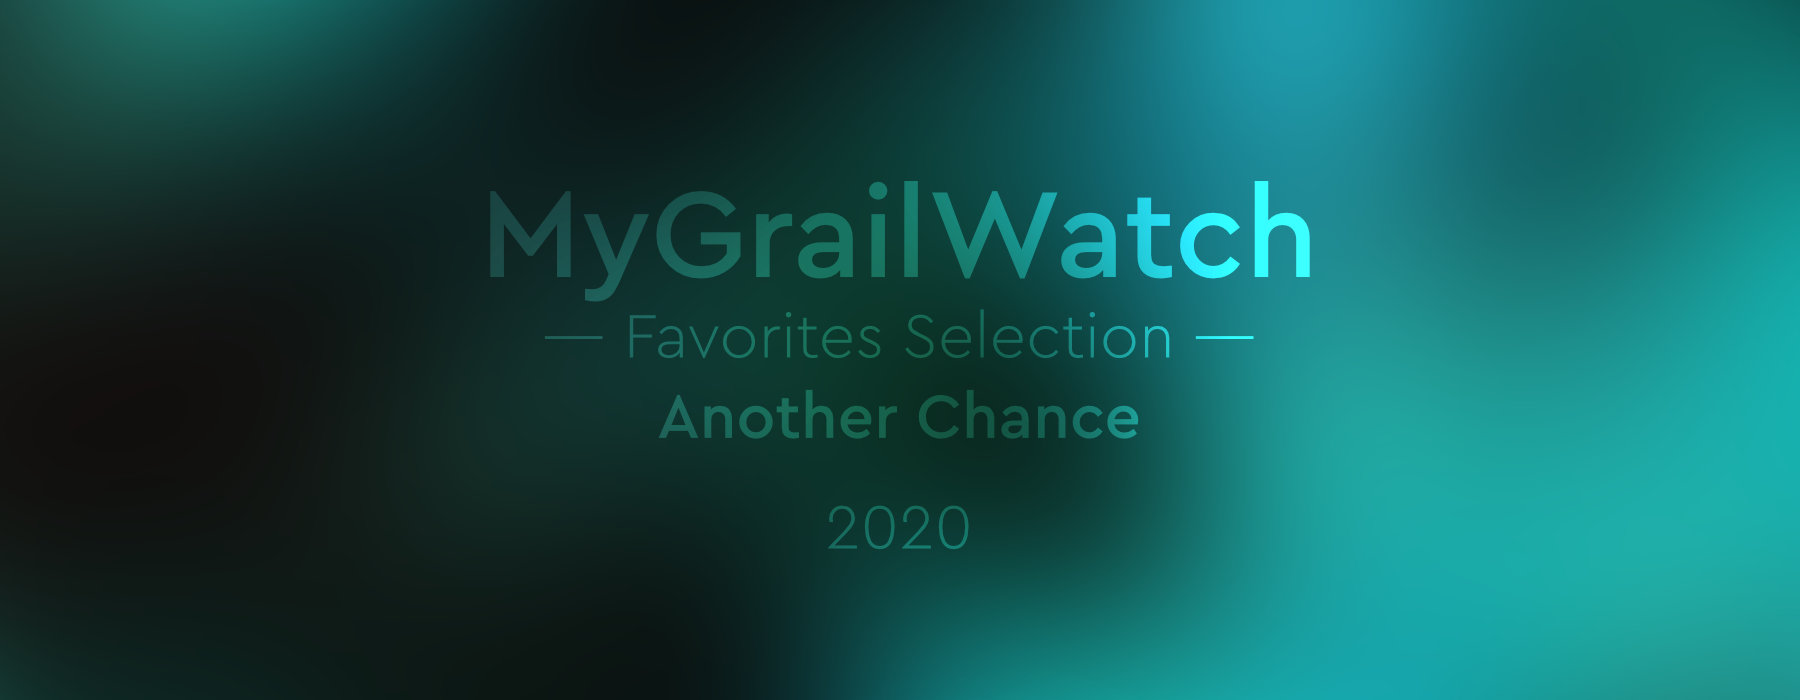 MGW Favorites Selection 2020 Another Chance